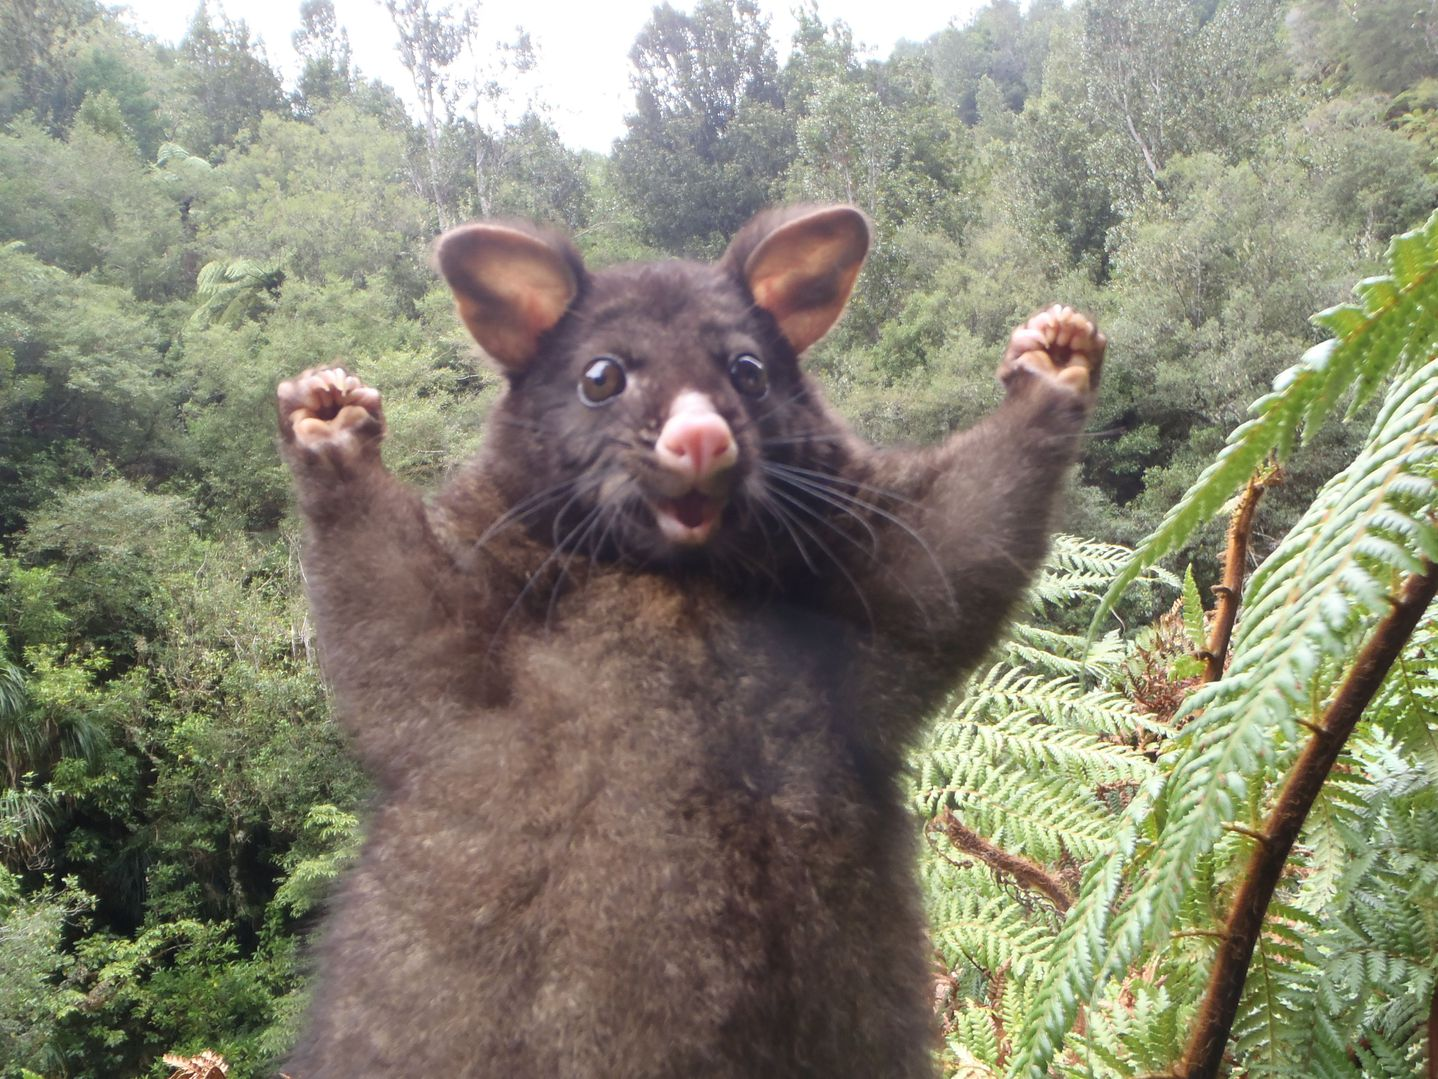 THE NAKED CITY – HELLO POSSUMS!